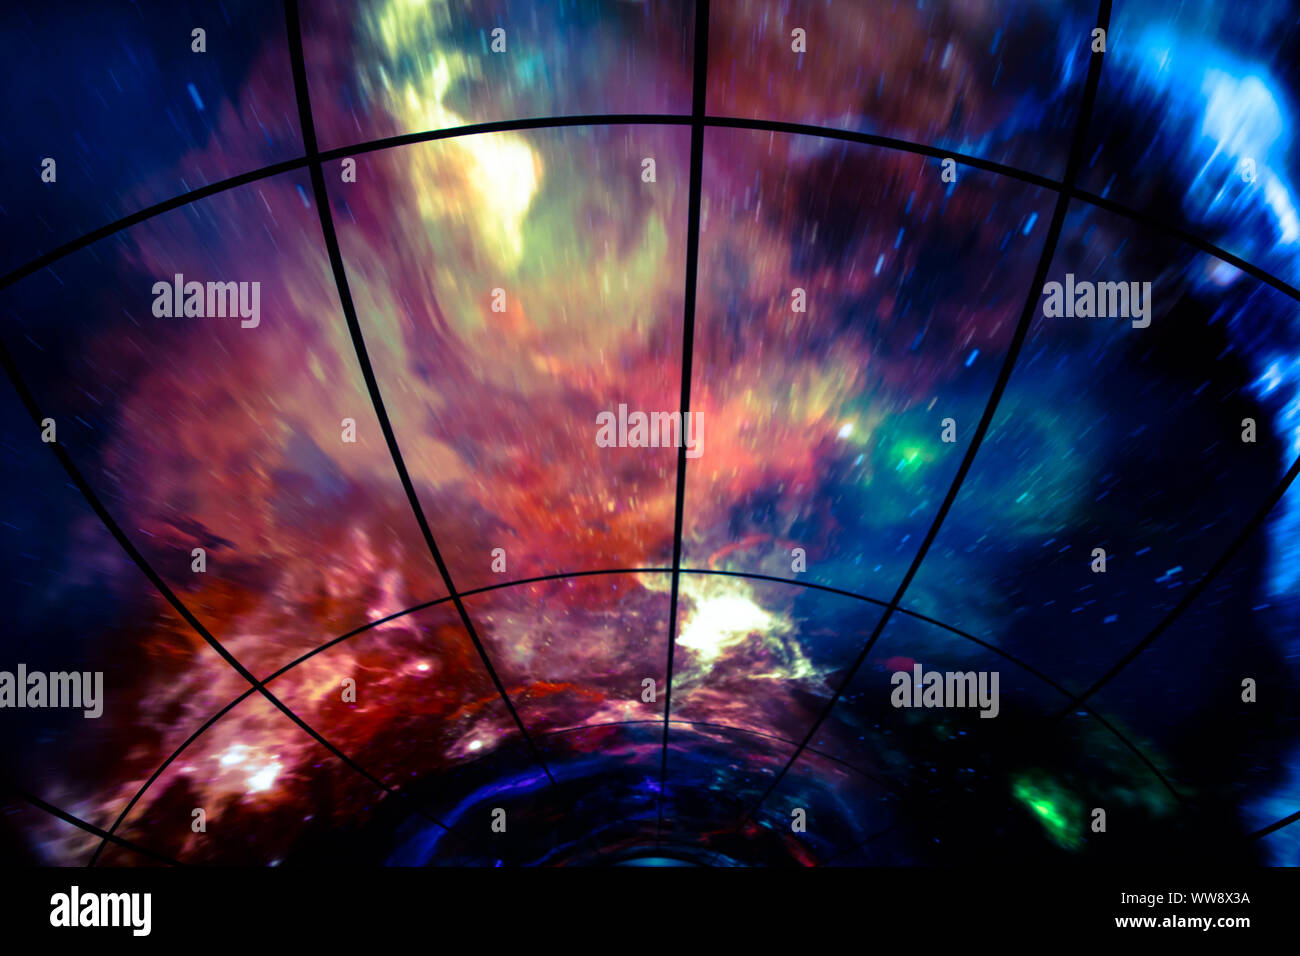 Colorful Artistic Neon And Modern Graphic Wallpaper Backdrop